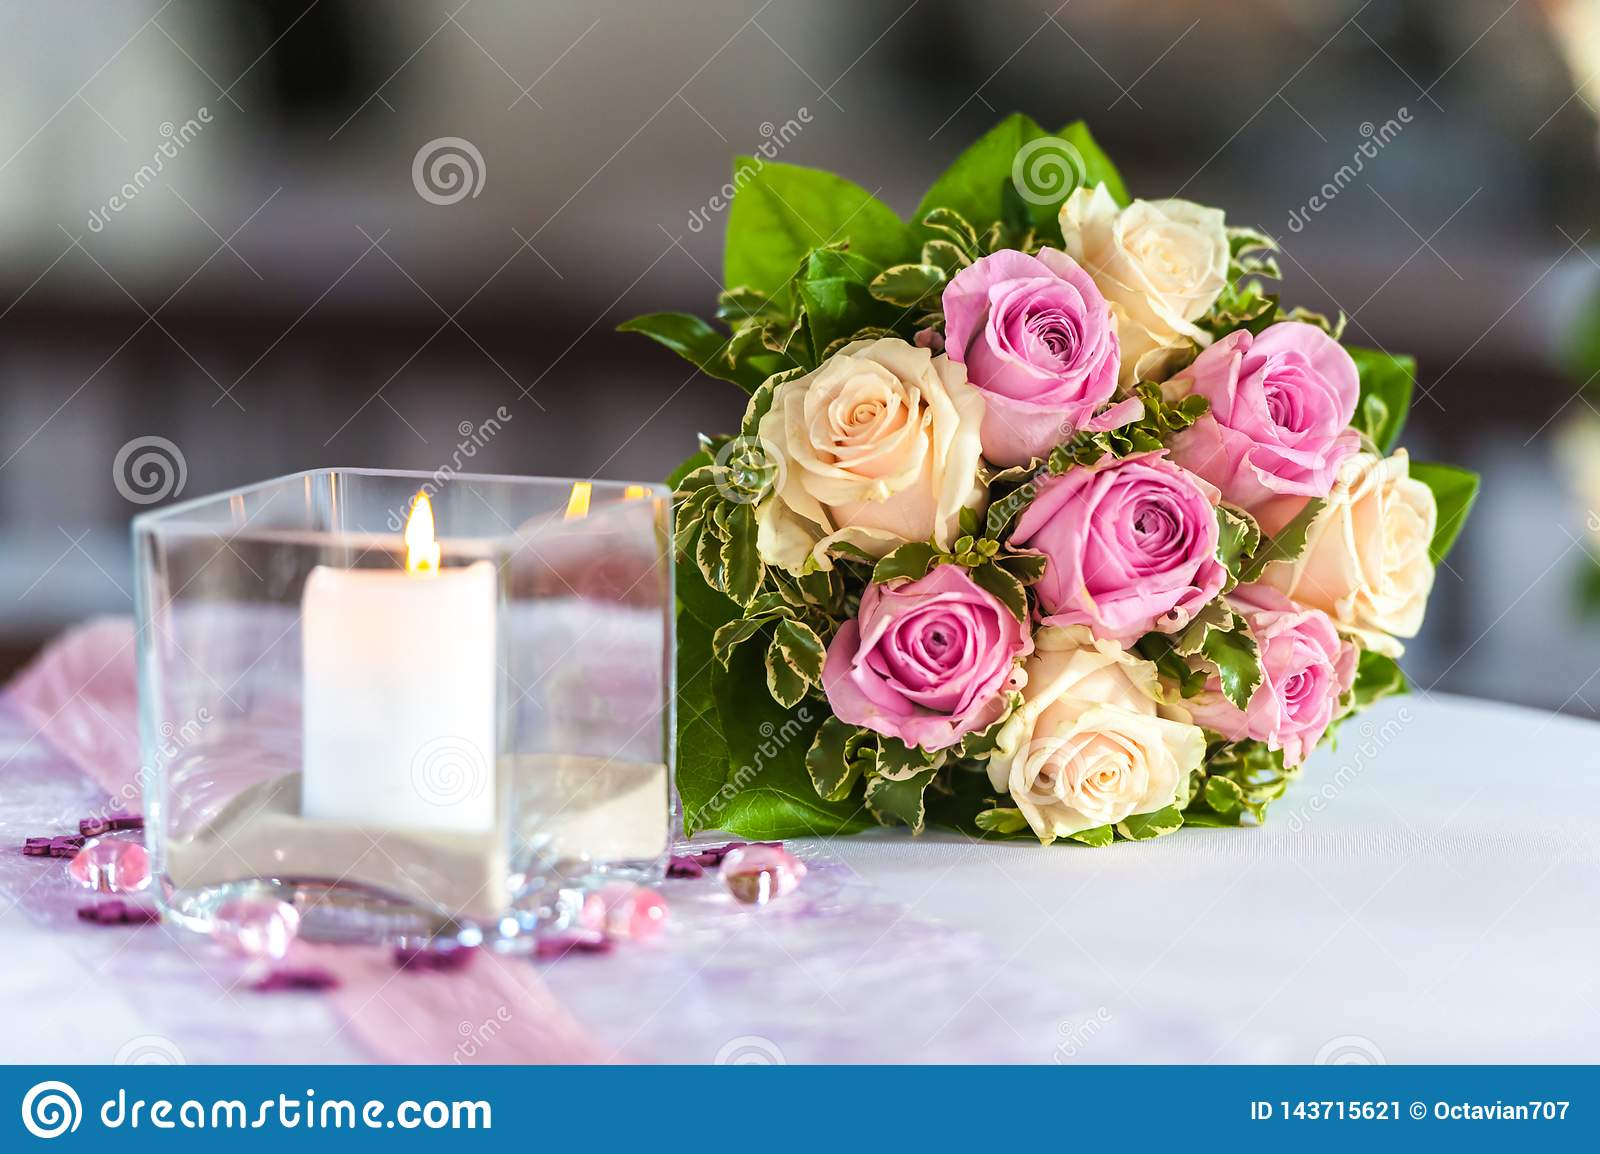 Bouquet of roses on table with candle